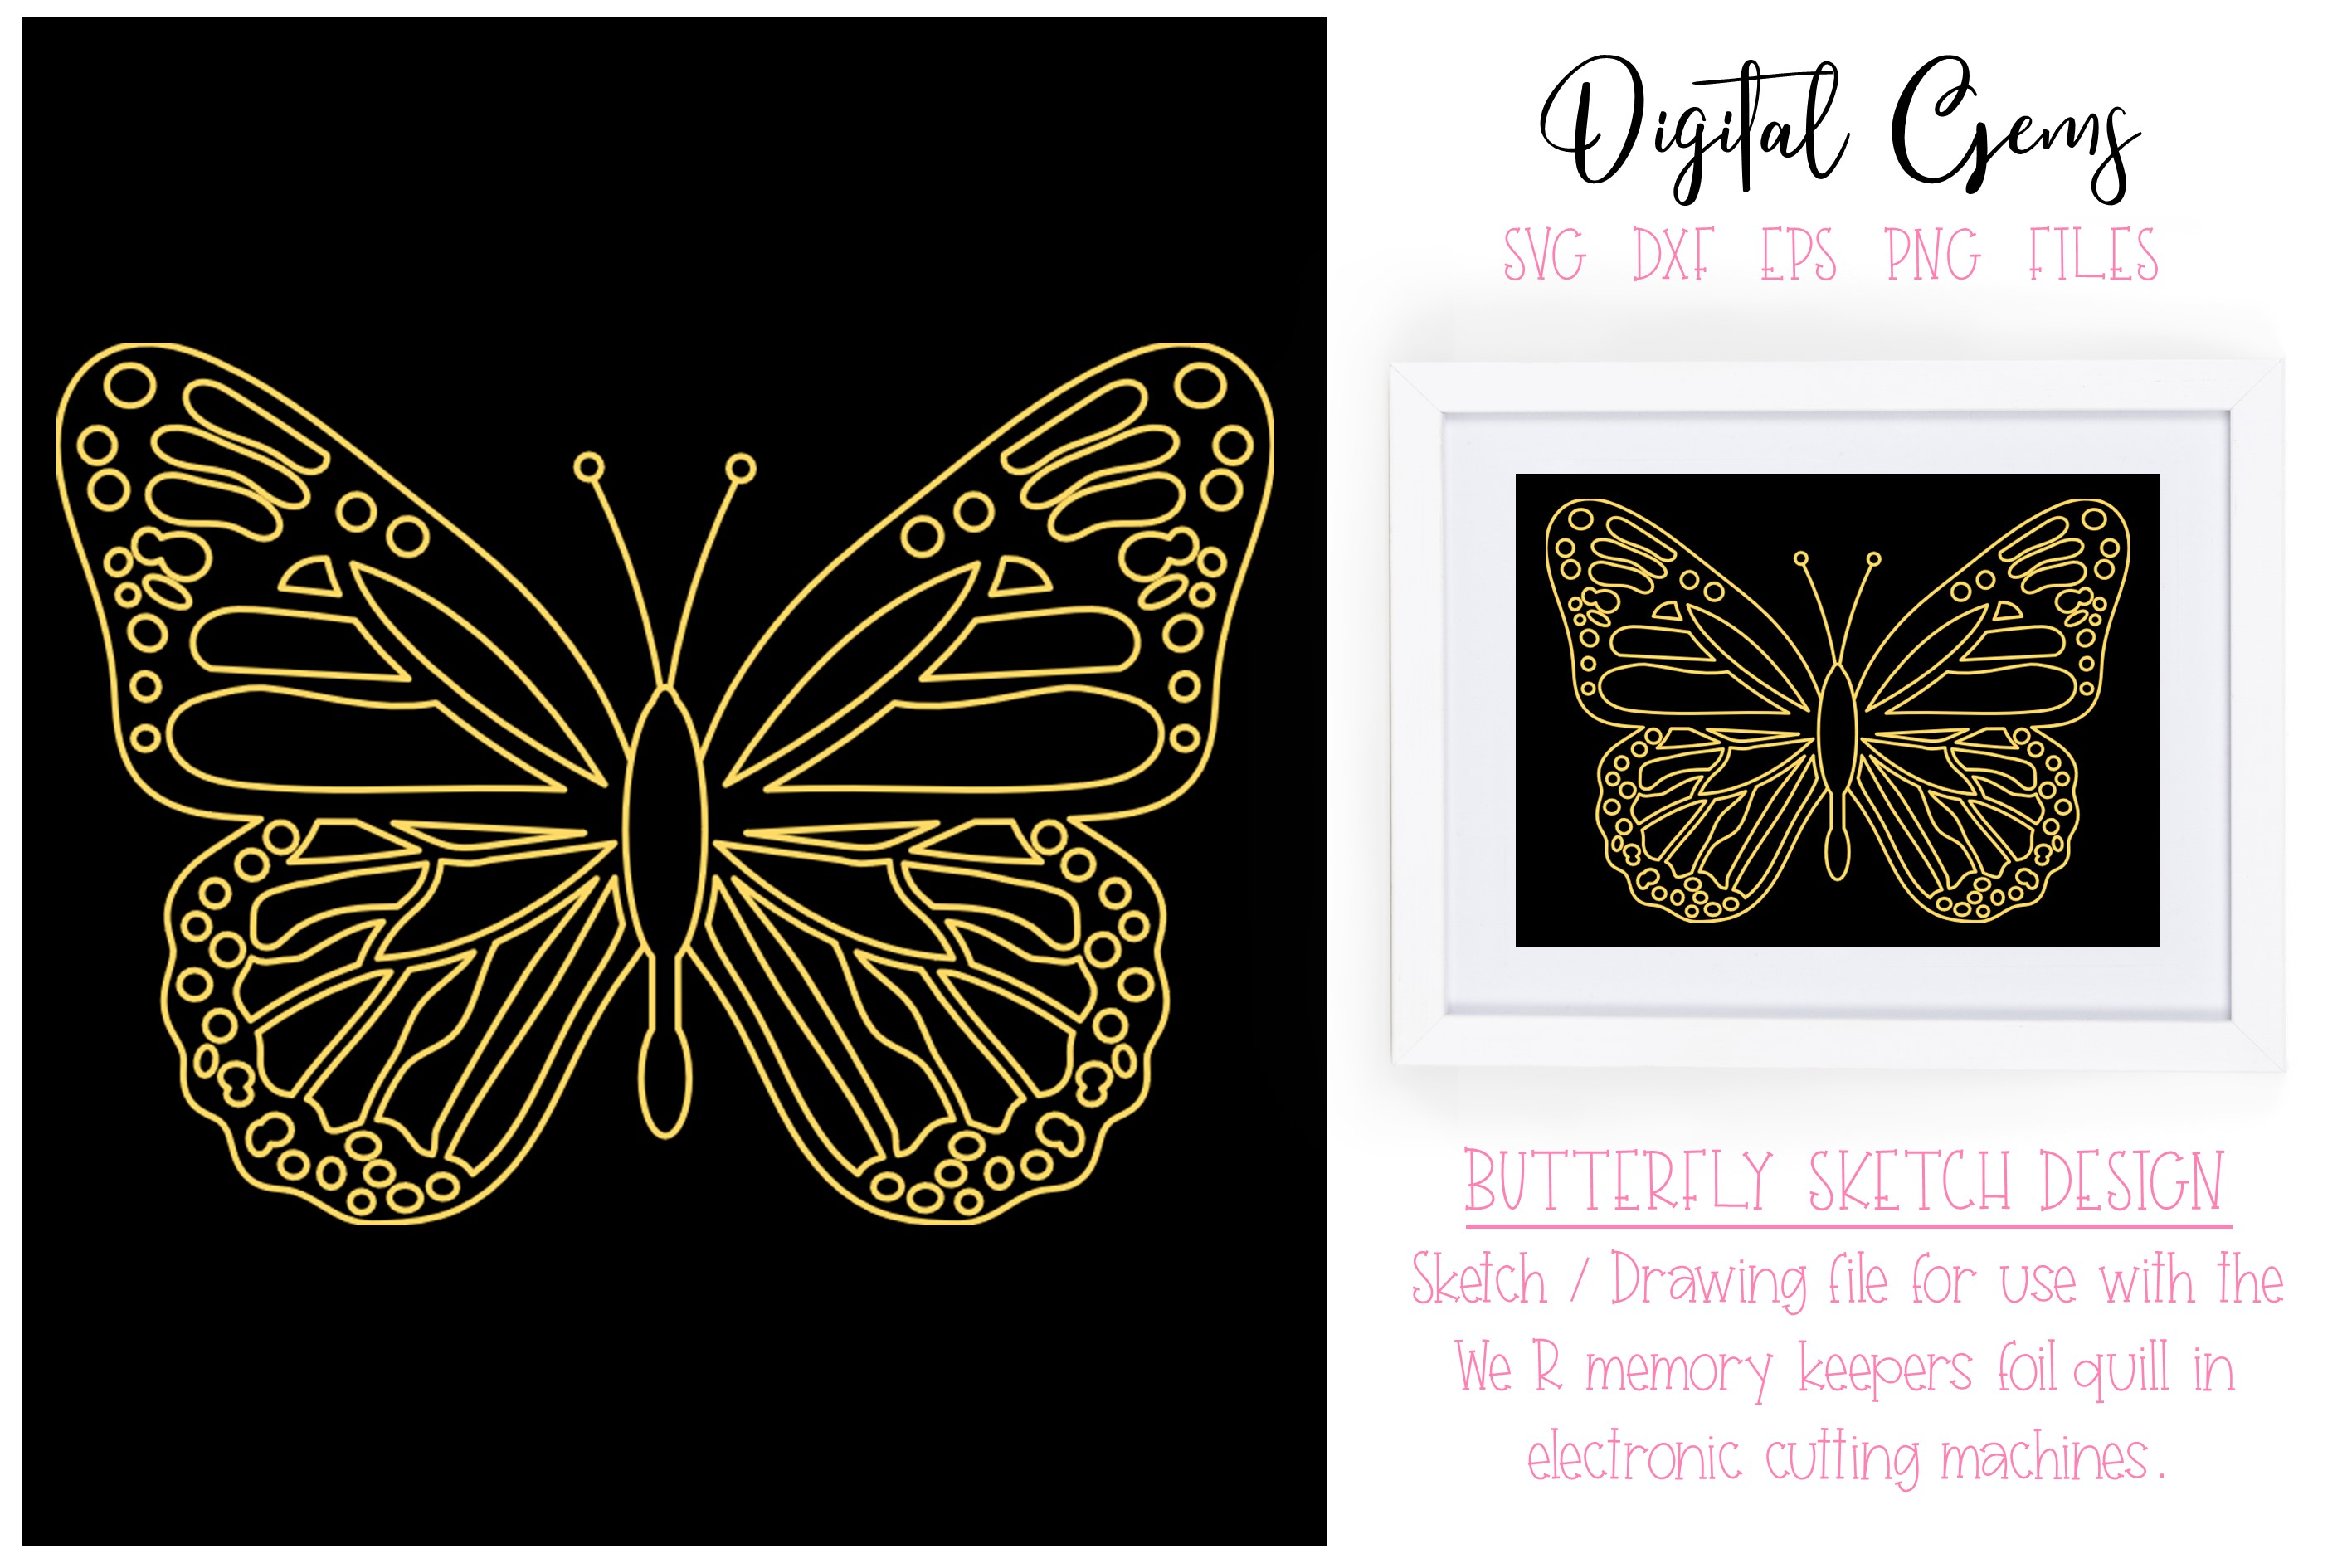 Download Free Butterfly Sketch Graphic By Digital Gems Creative Fabrica for Cricut Explore, Silhouette and other cutting machines.